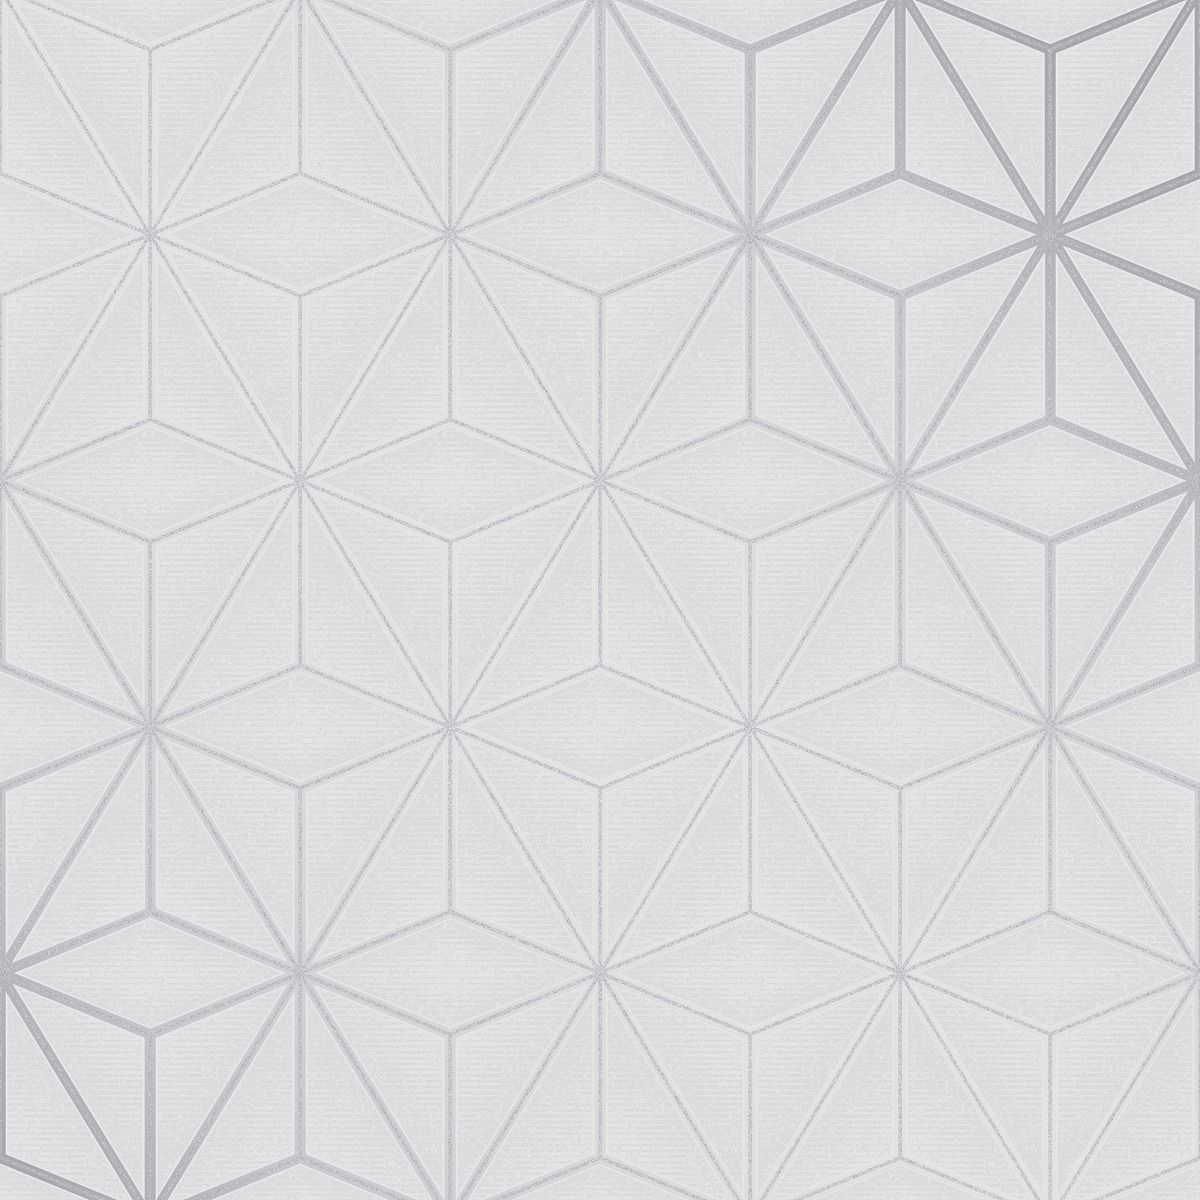 Quartz Metallic Trellis Wallpaper